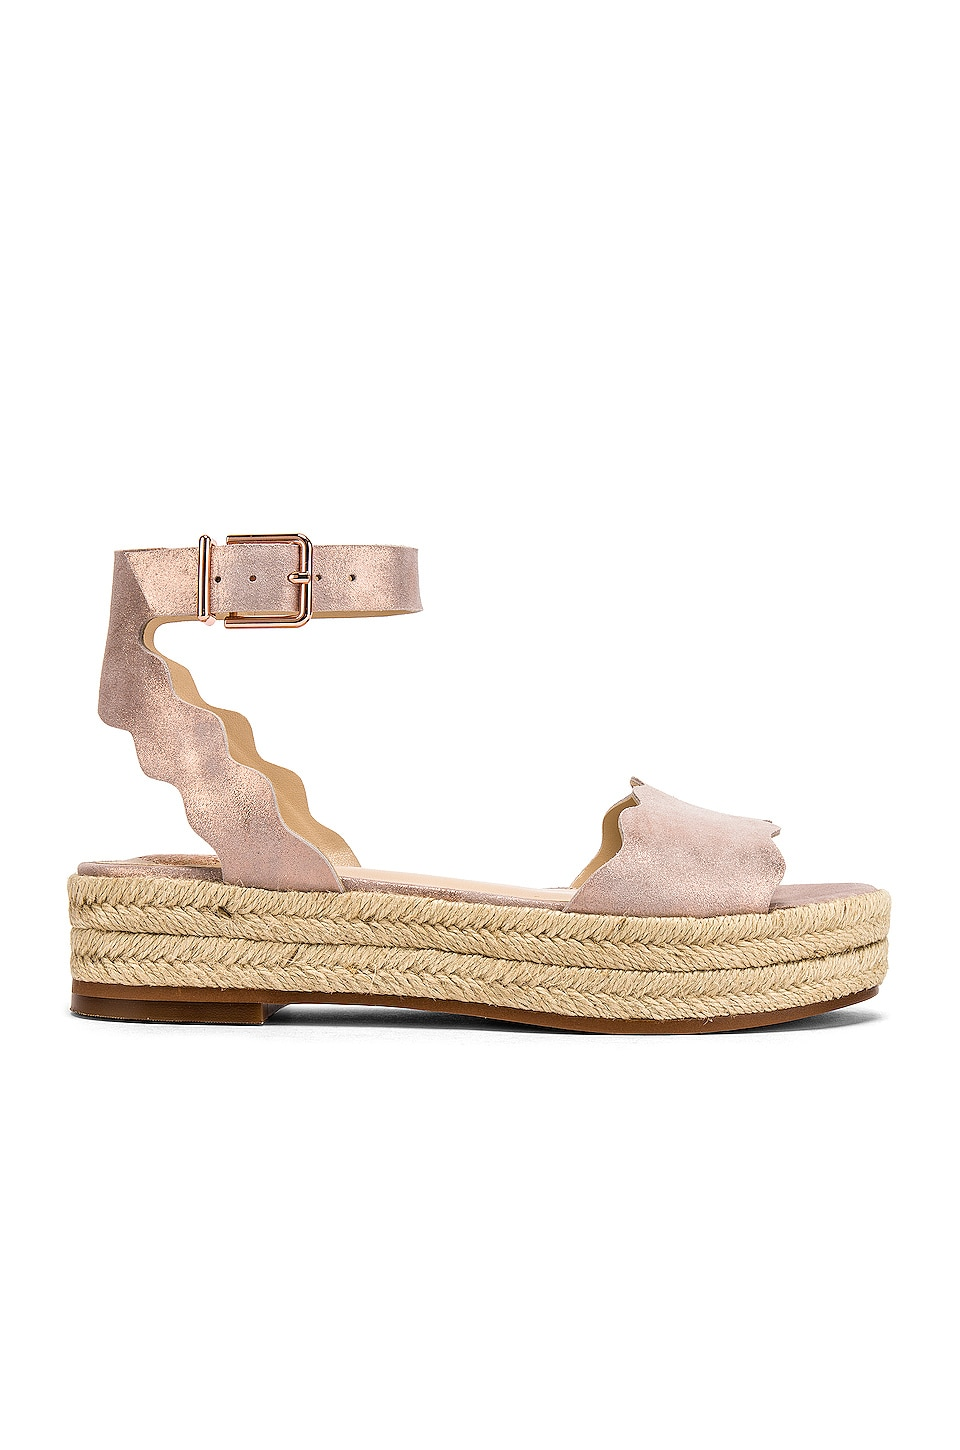 Vince Camuto Kamperla Sandal in Blush